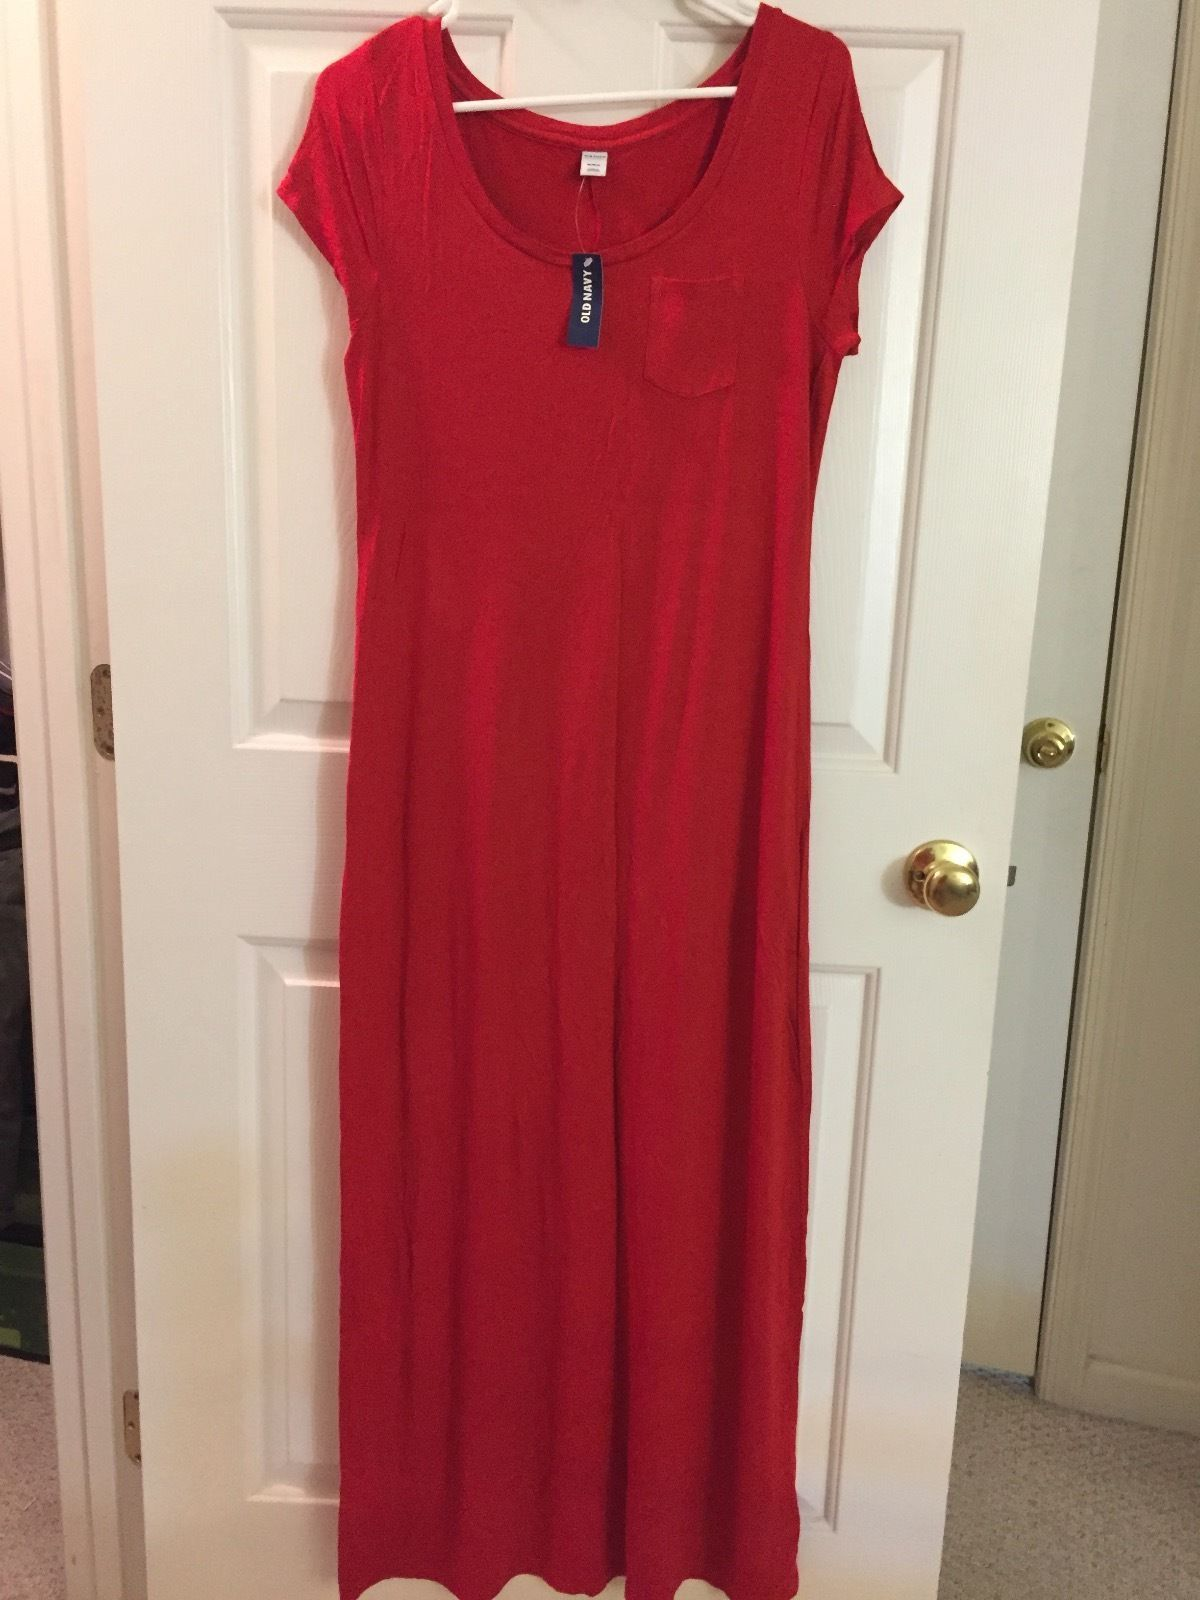 Cool NEW Old Navy Short Sleeve Maxi Dress Red - Women\'s Size M 2017 ...